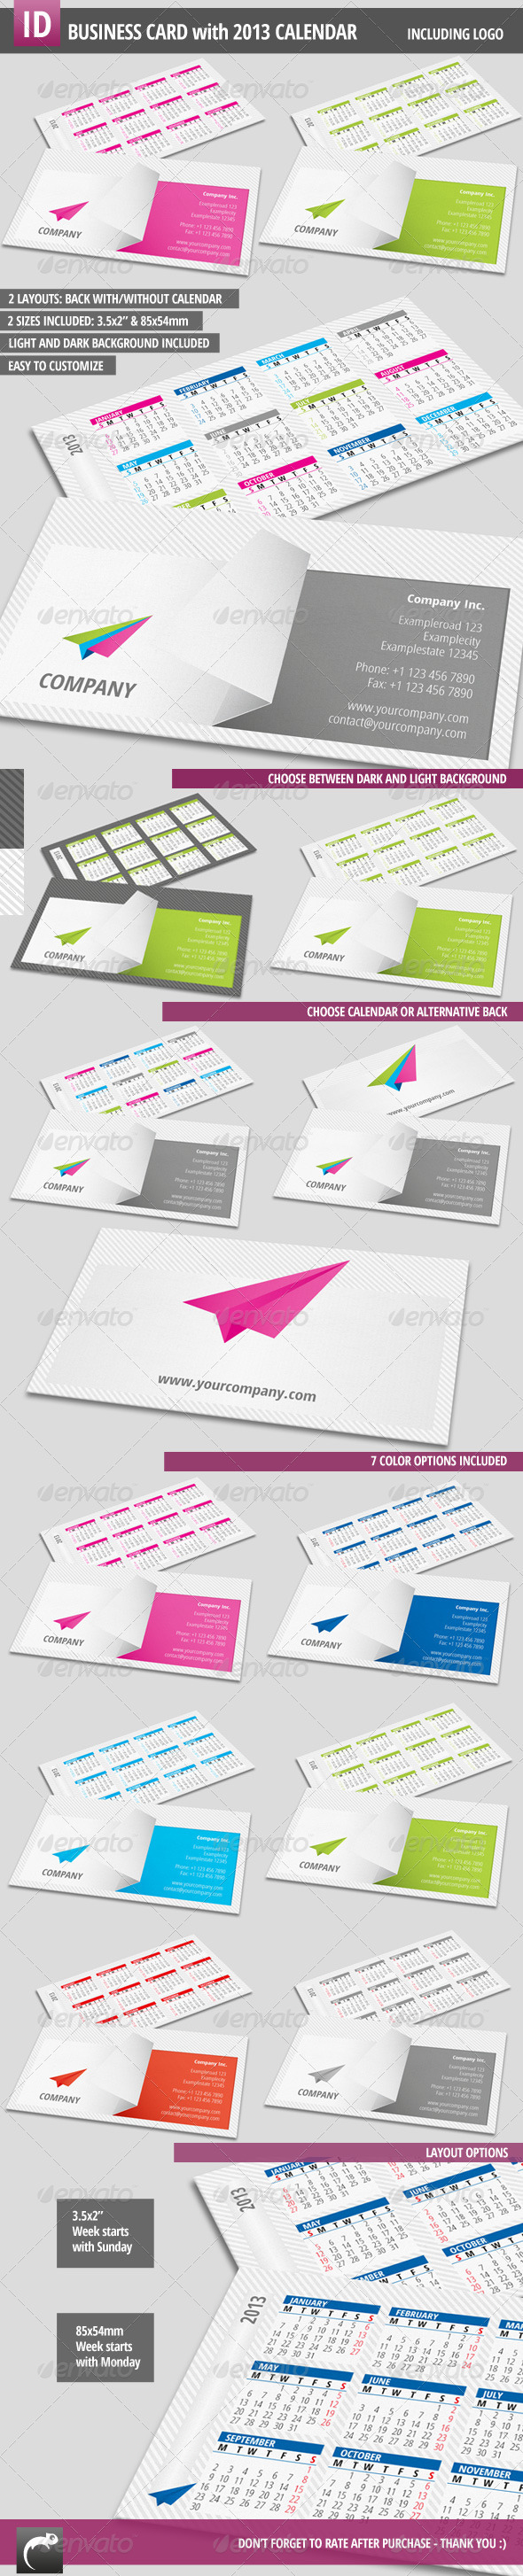 GraphicRiver Modern Business Card with Calendar 2013 2785877